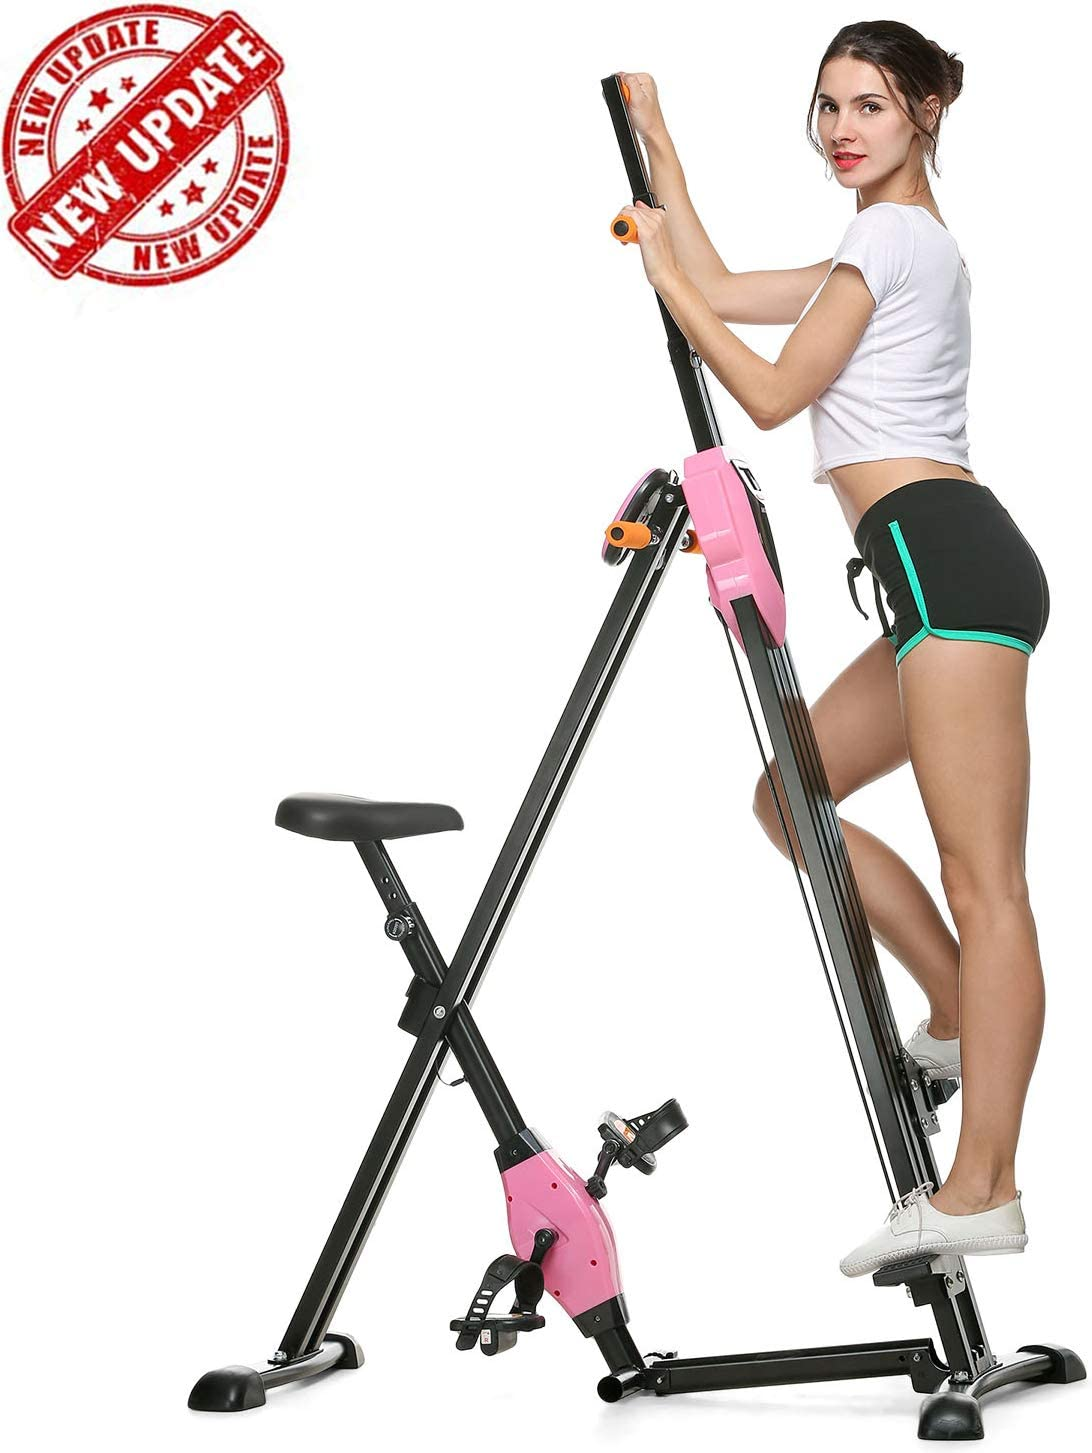 Total Body Workout Vertical Climber Machine,Training Hip Grips Legs Arms Abs Calf Mauccau Folding Exercise Step Machine /& Indoor Vertical Climber Home Gym